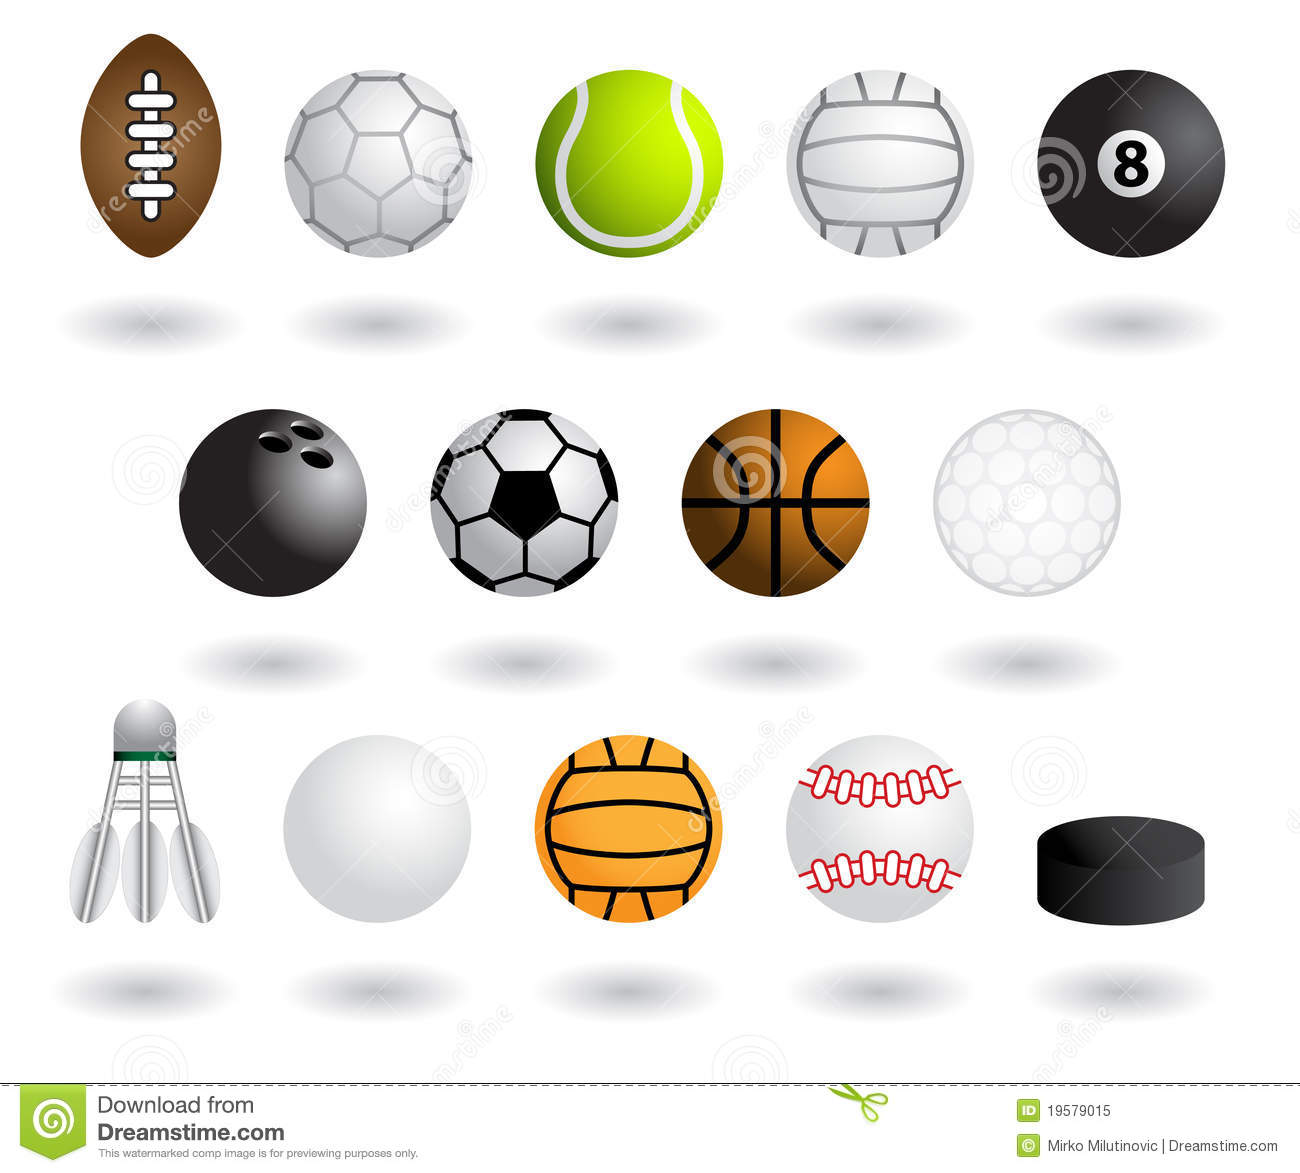 free clipart of sports equipment - photo #32